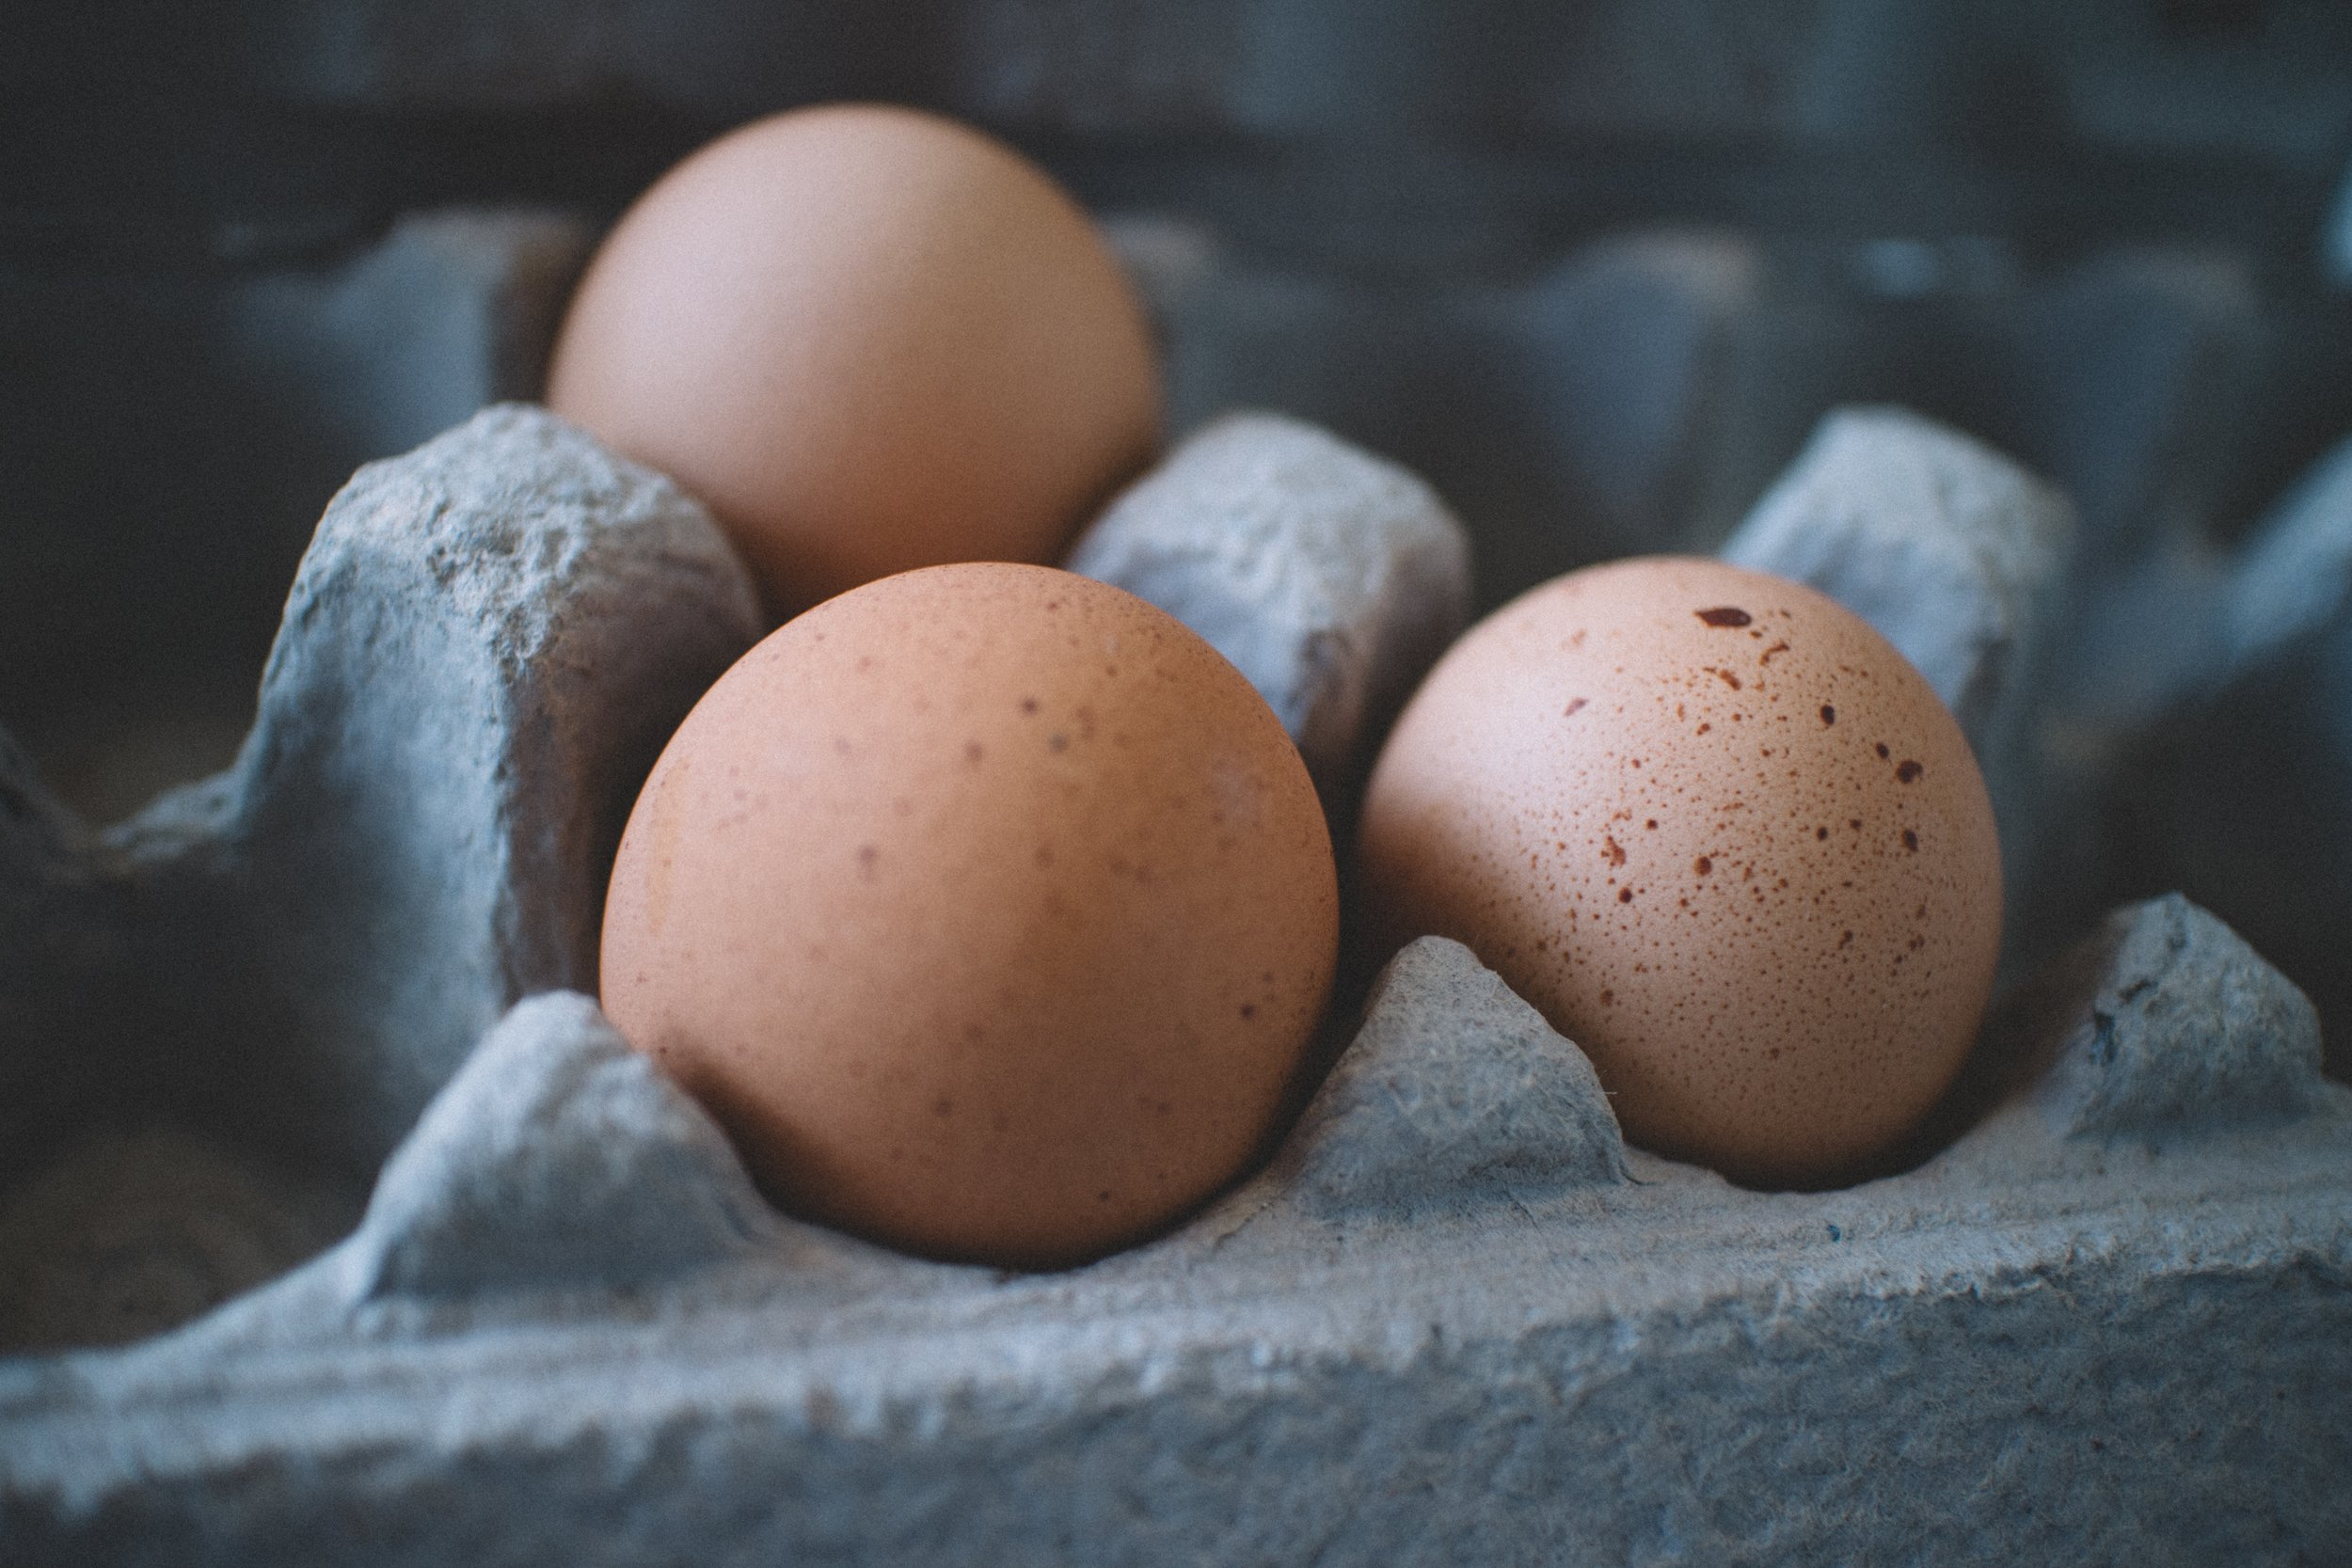 chicken-eggs-close-up-egg-tray-600615.jpg